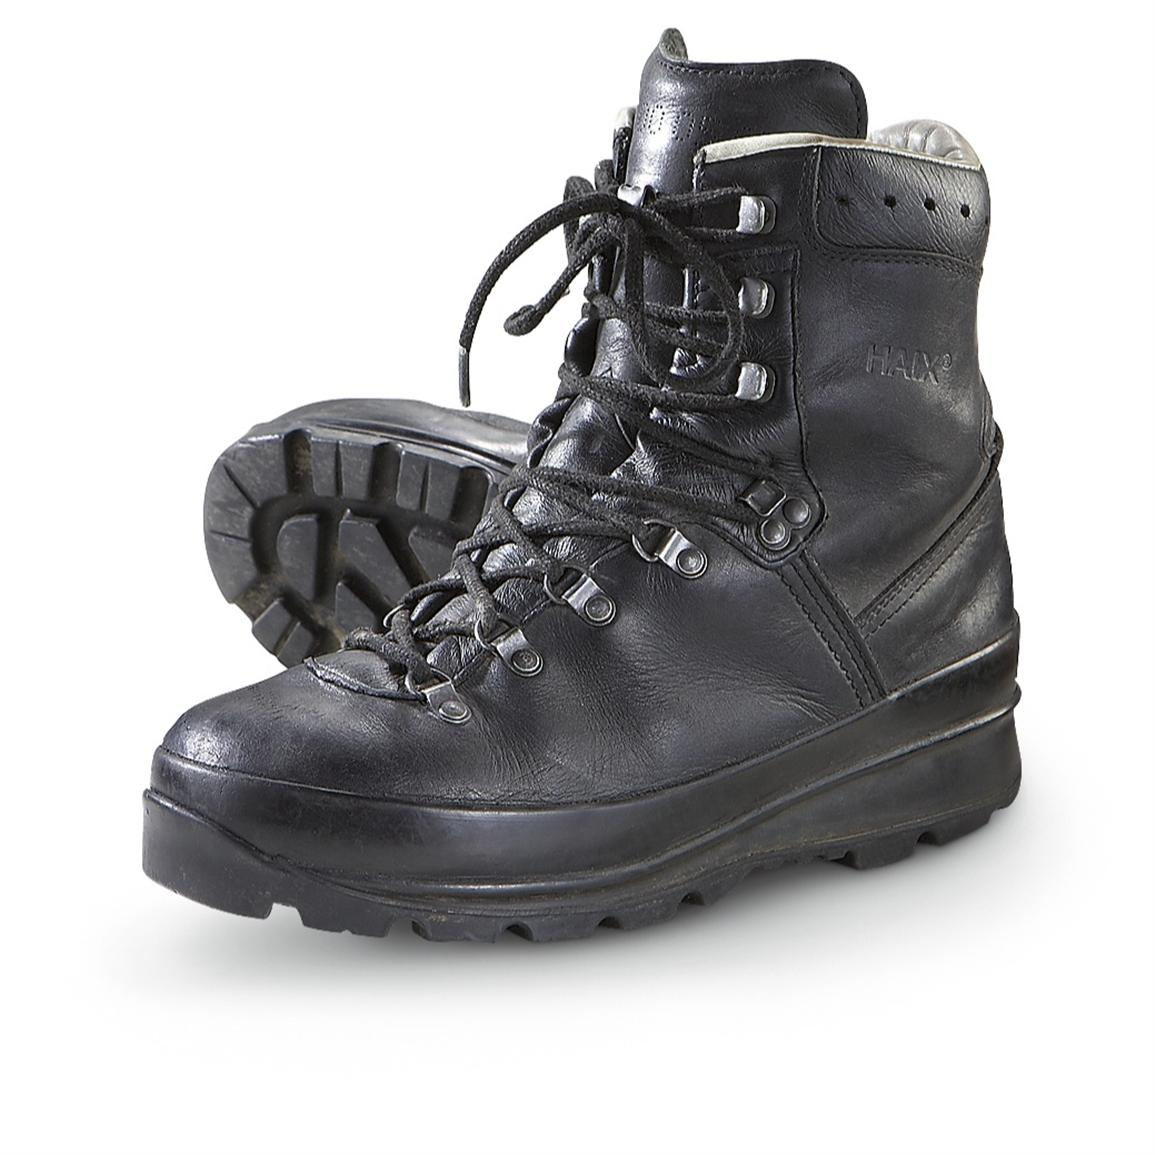 Men S Used German Military Mountain Boots Black 182645